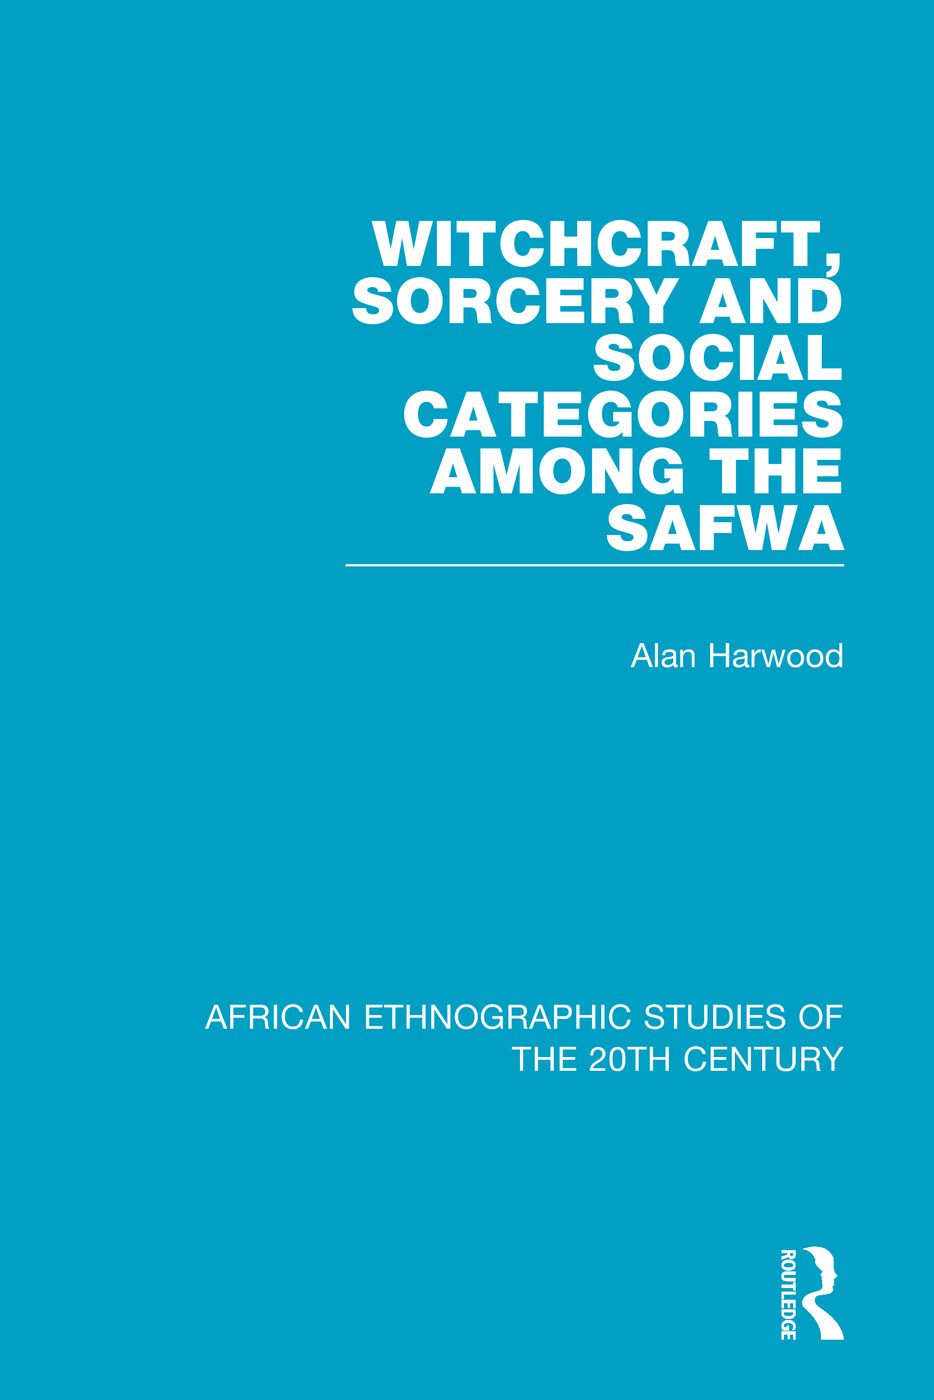 Witchcraft, Sorcery and Social Categories Among the Safwa book cover